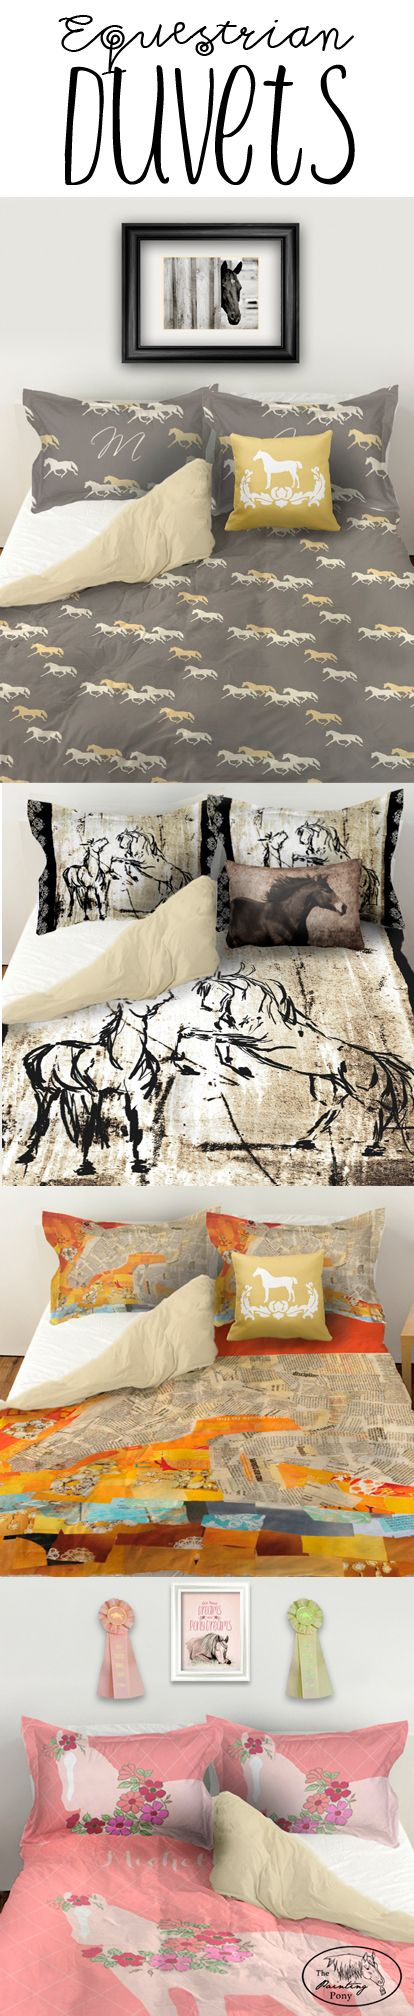 Duvet Bedding sets for the equestrian horse lover's bedroom decor. Available in …